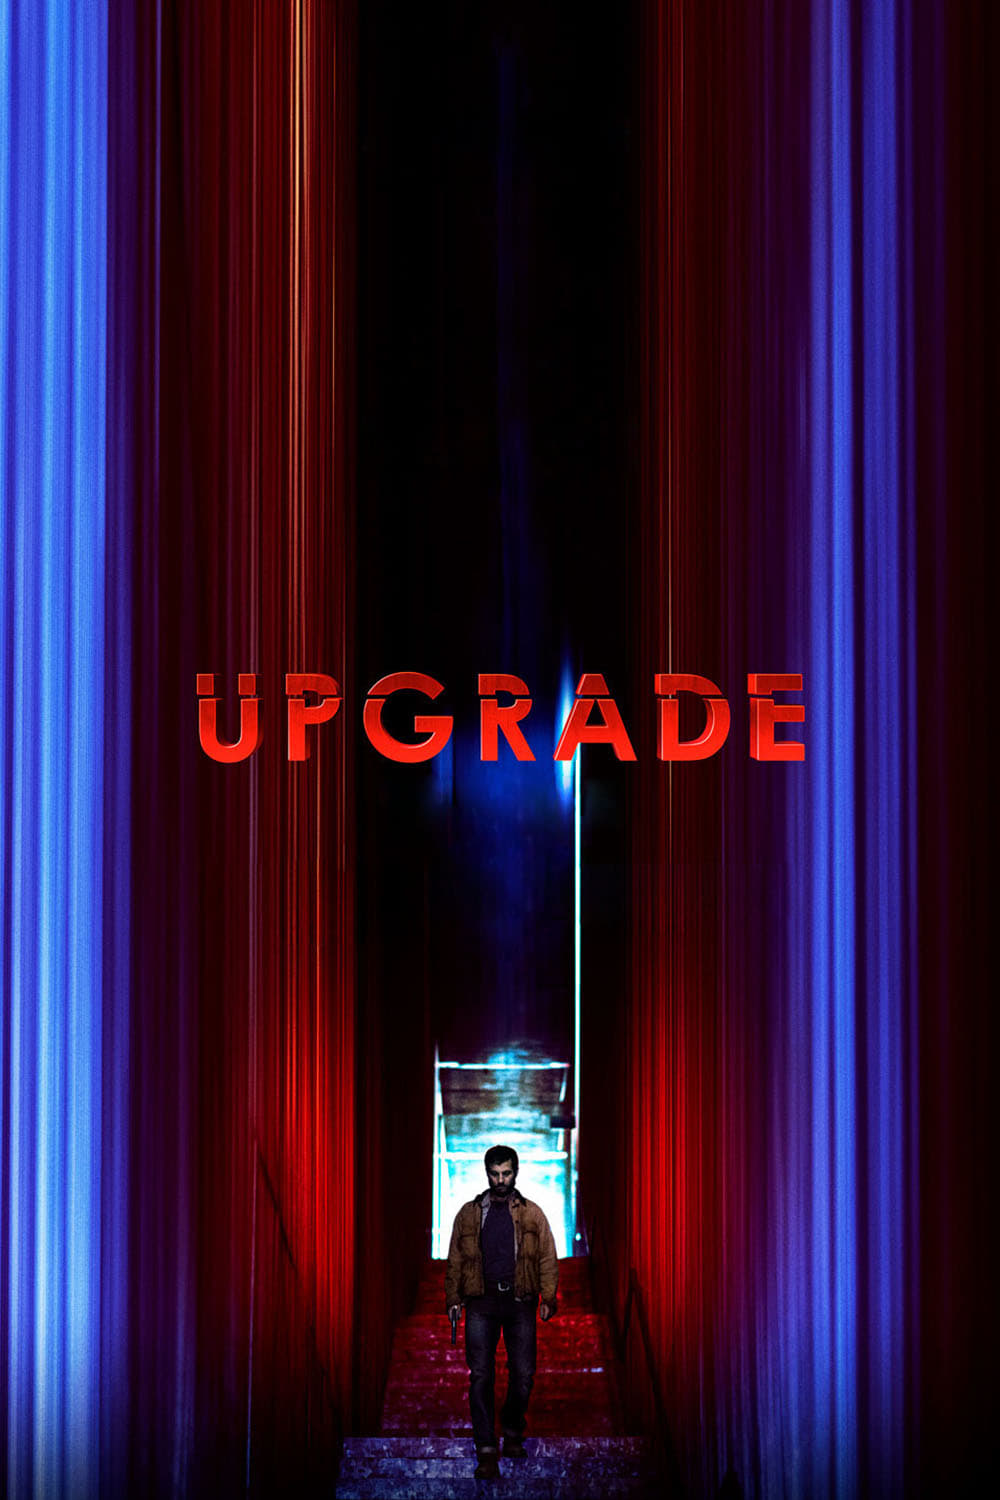 Póster Upgrade (Ilimitado)